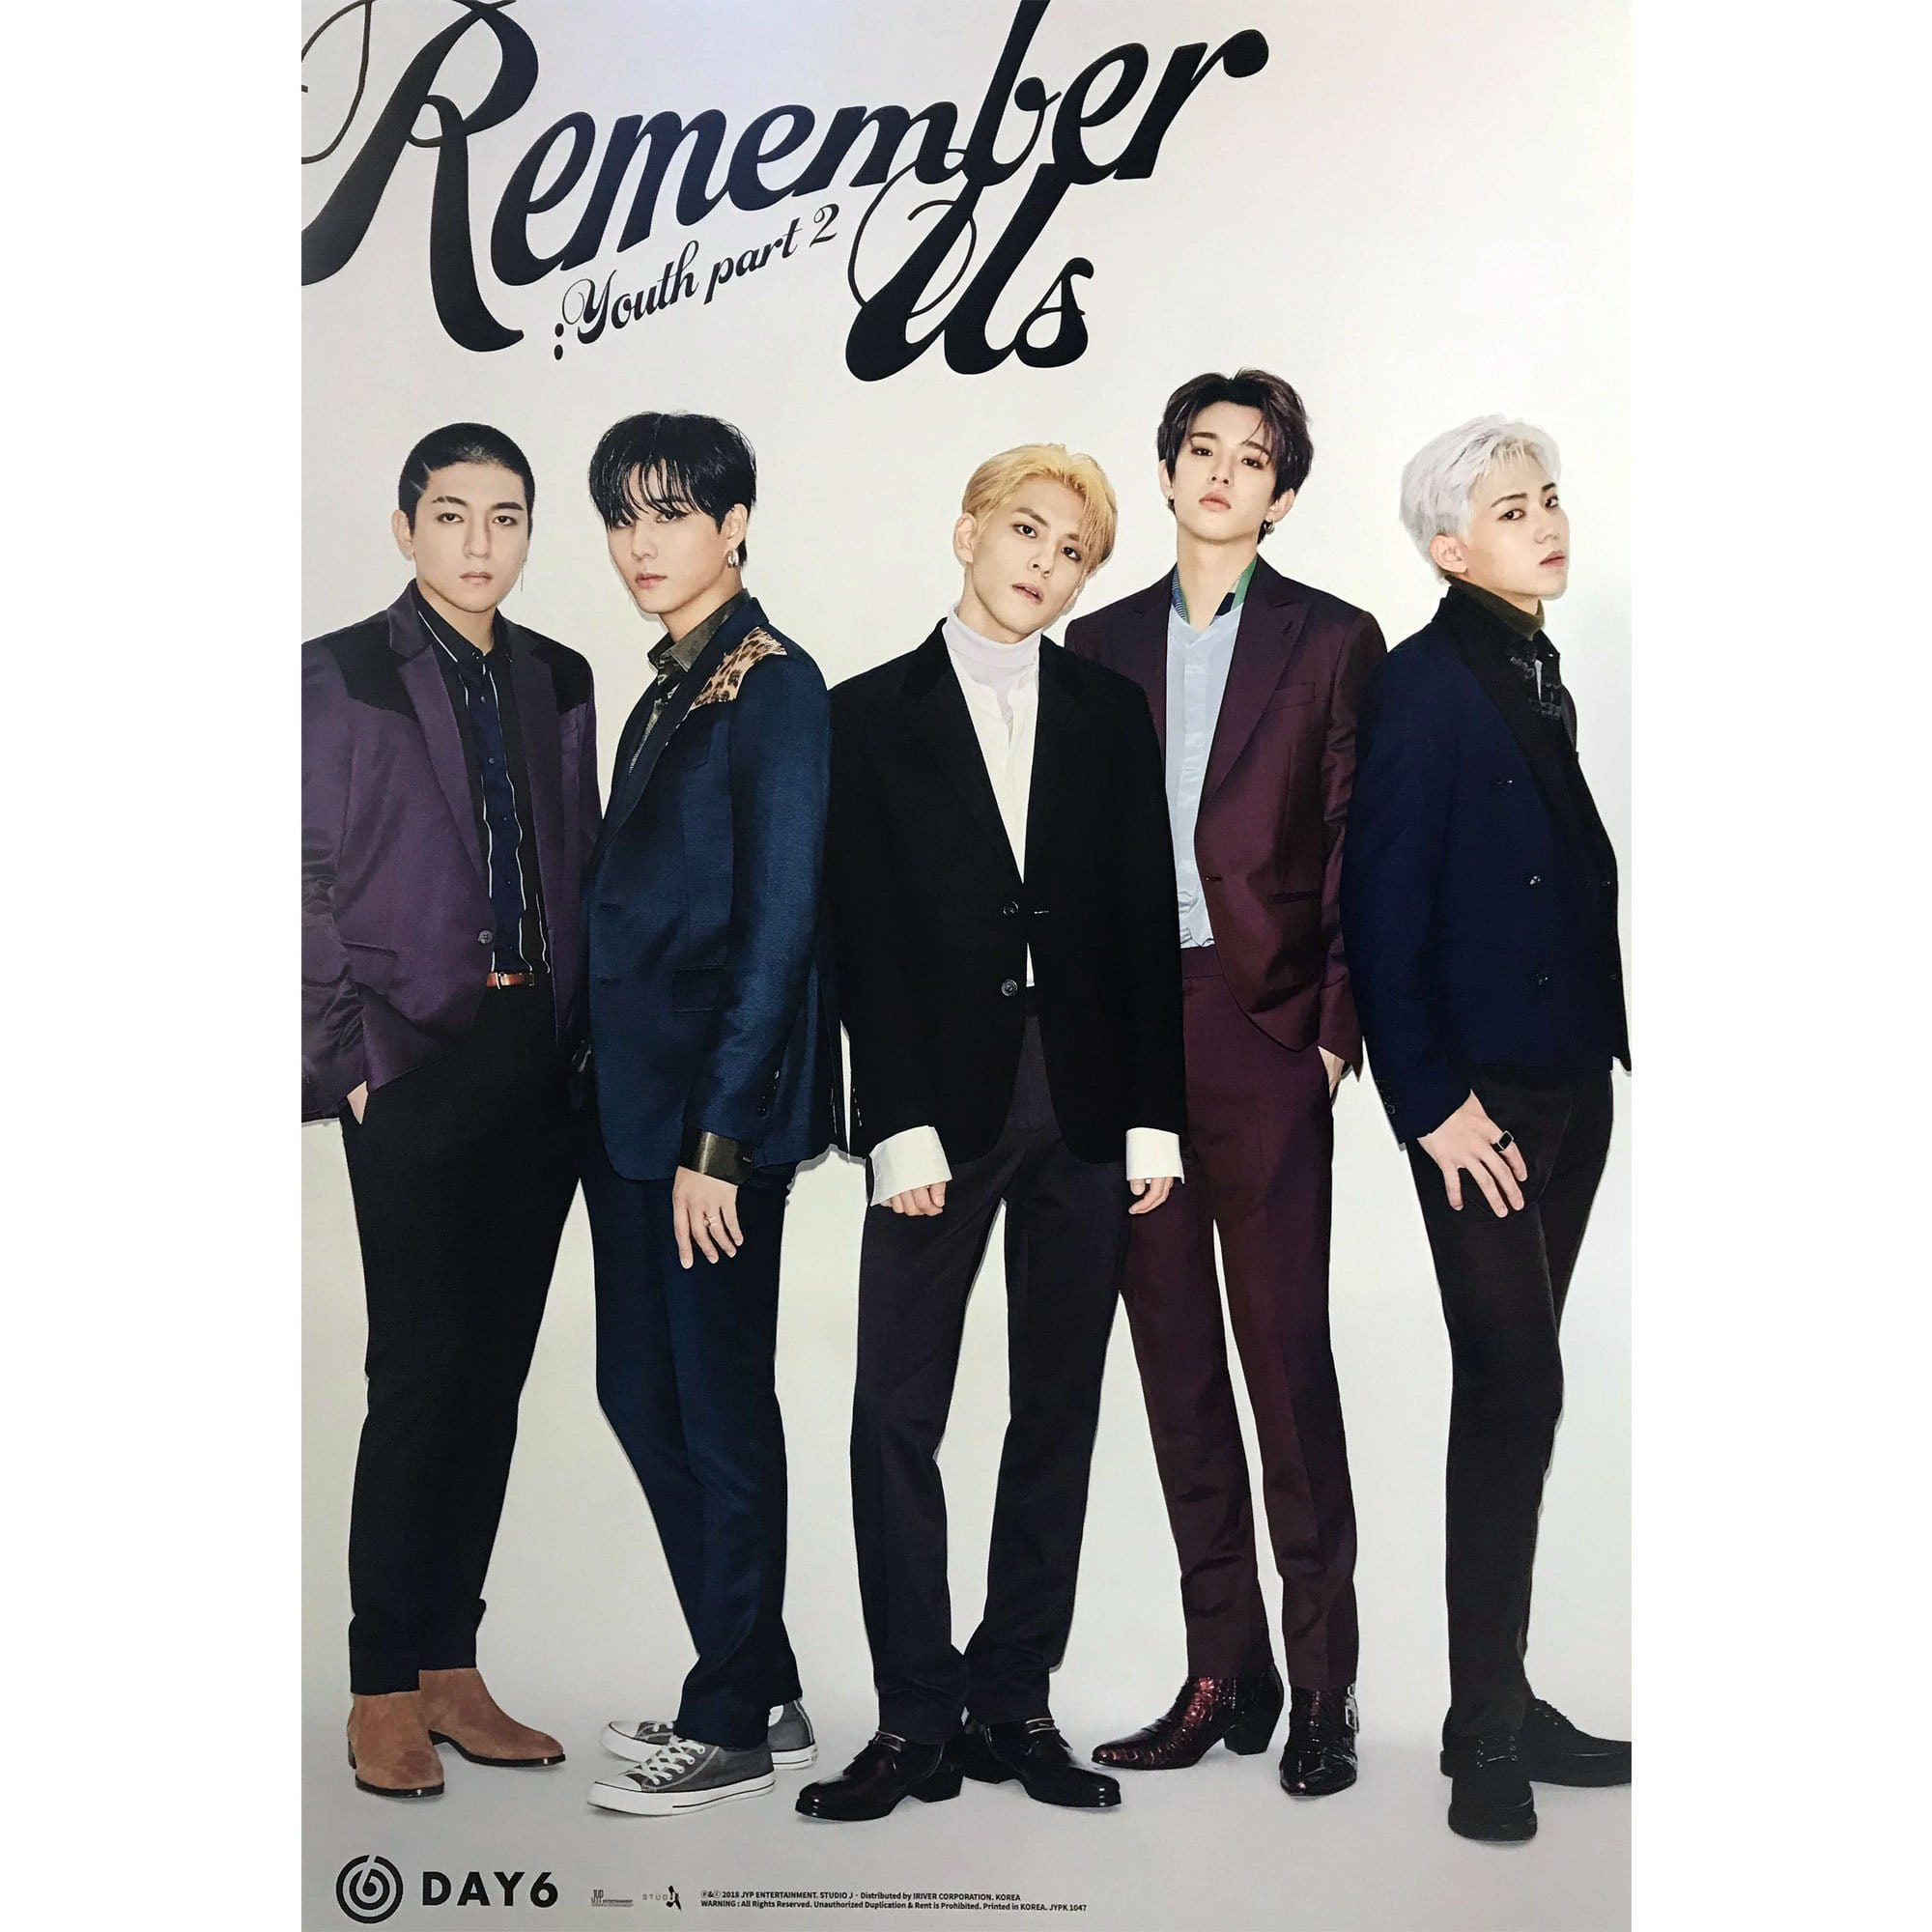 데이식스 | DAY6 | 4TH MINI - REMEMBER US : YOUTH PART 2 | POSTER